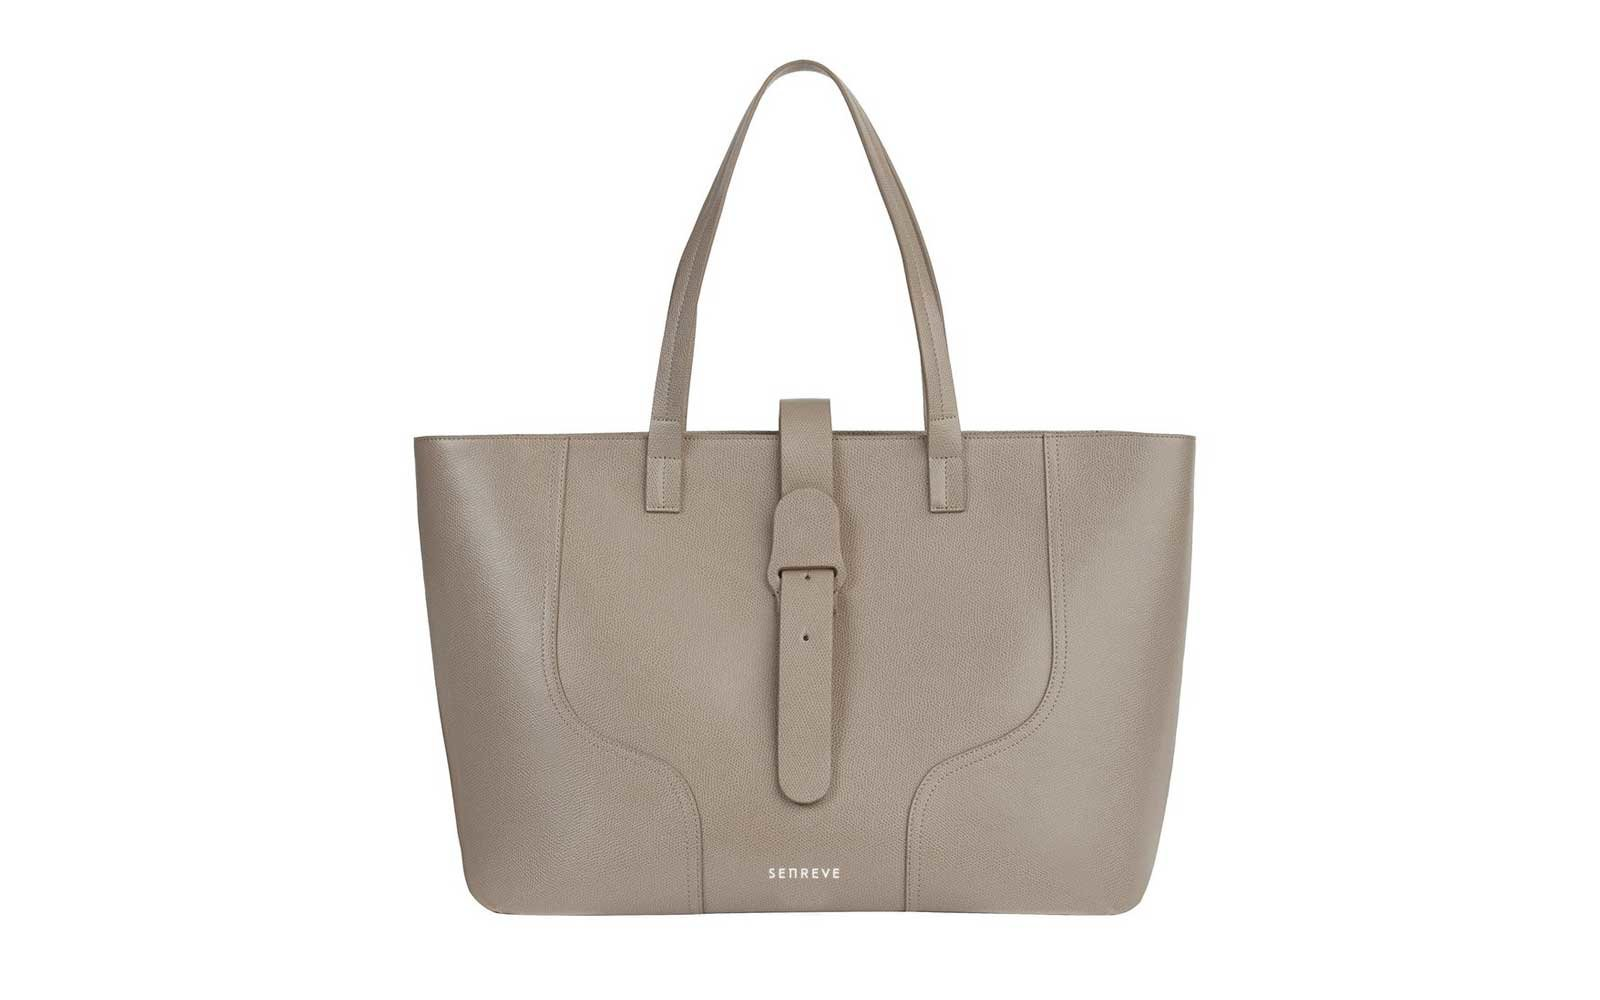 Fashion week Wear you Would An oversized tote? for woman